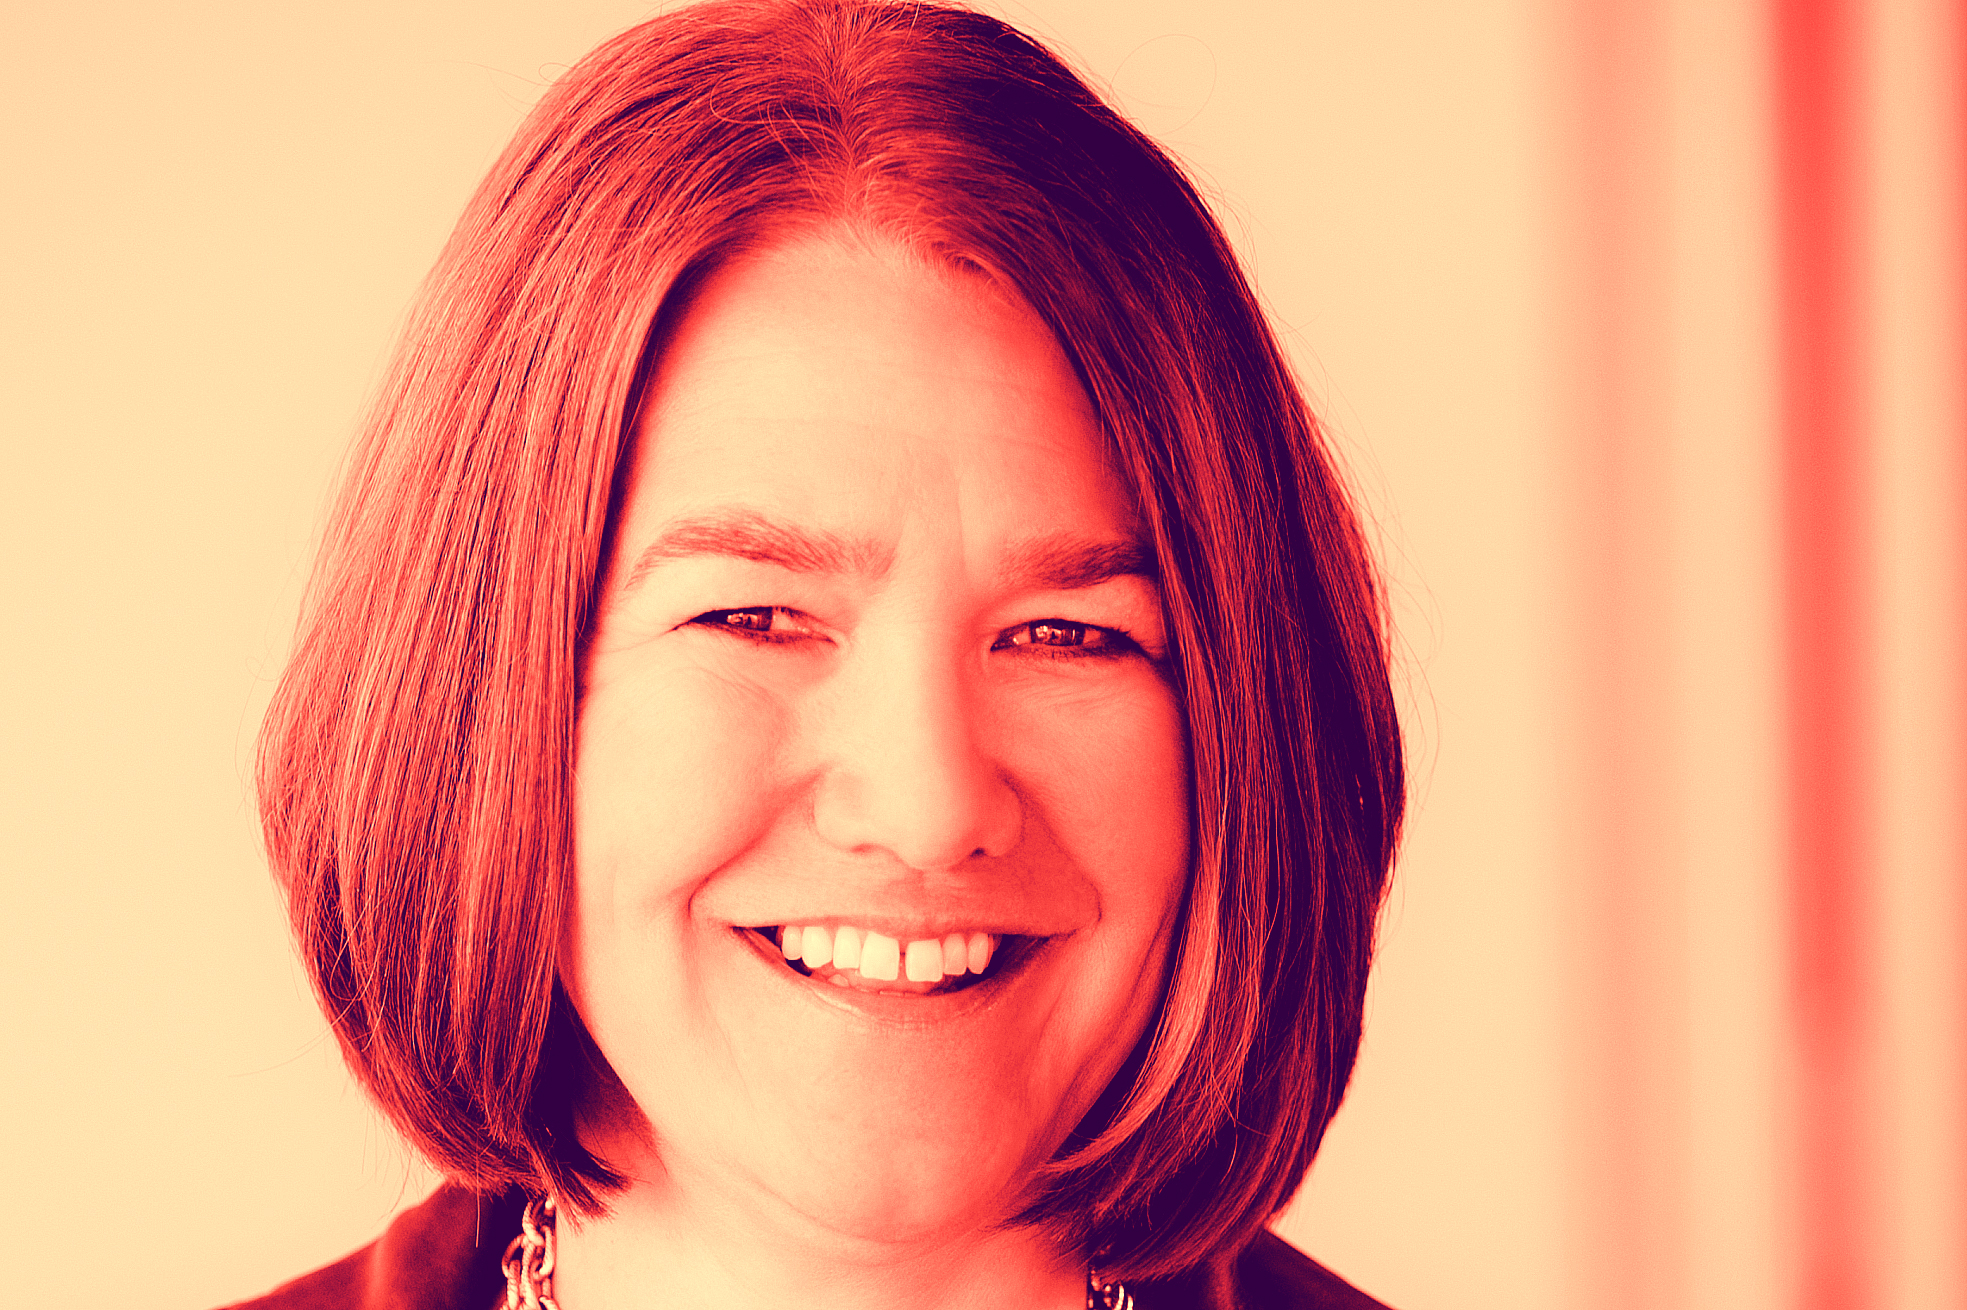 Alison Lewis out as CMO of J&J consumer business; company cites 'new business model'